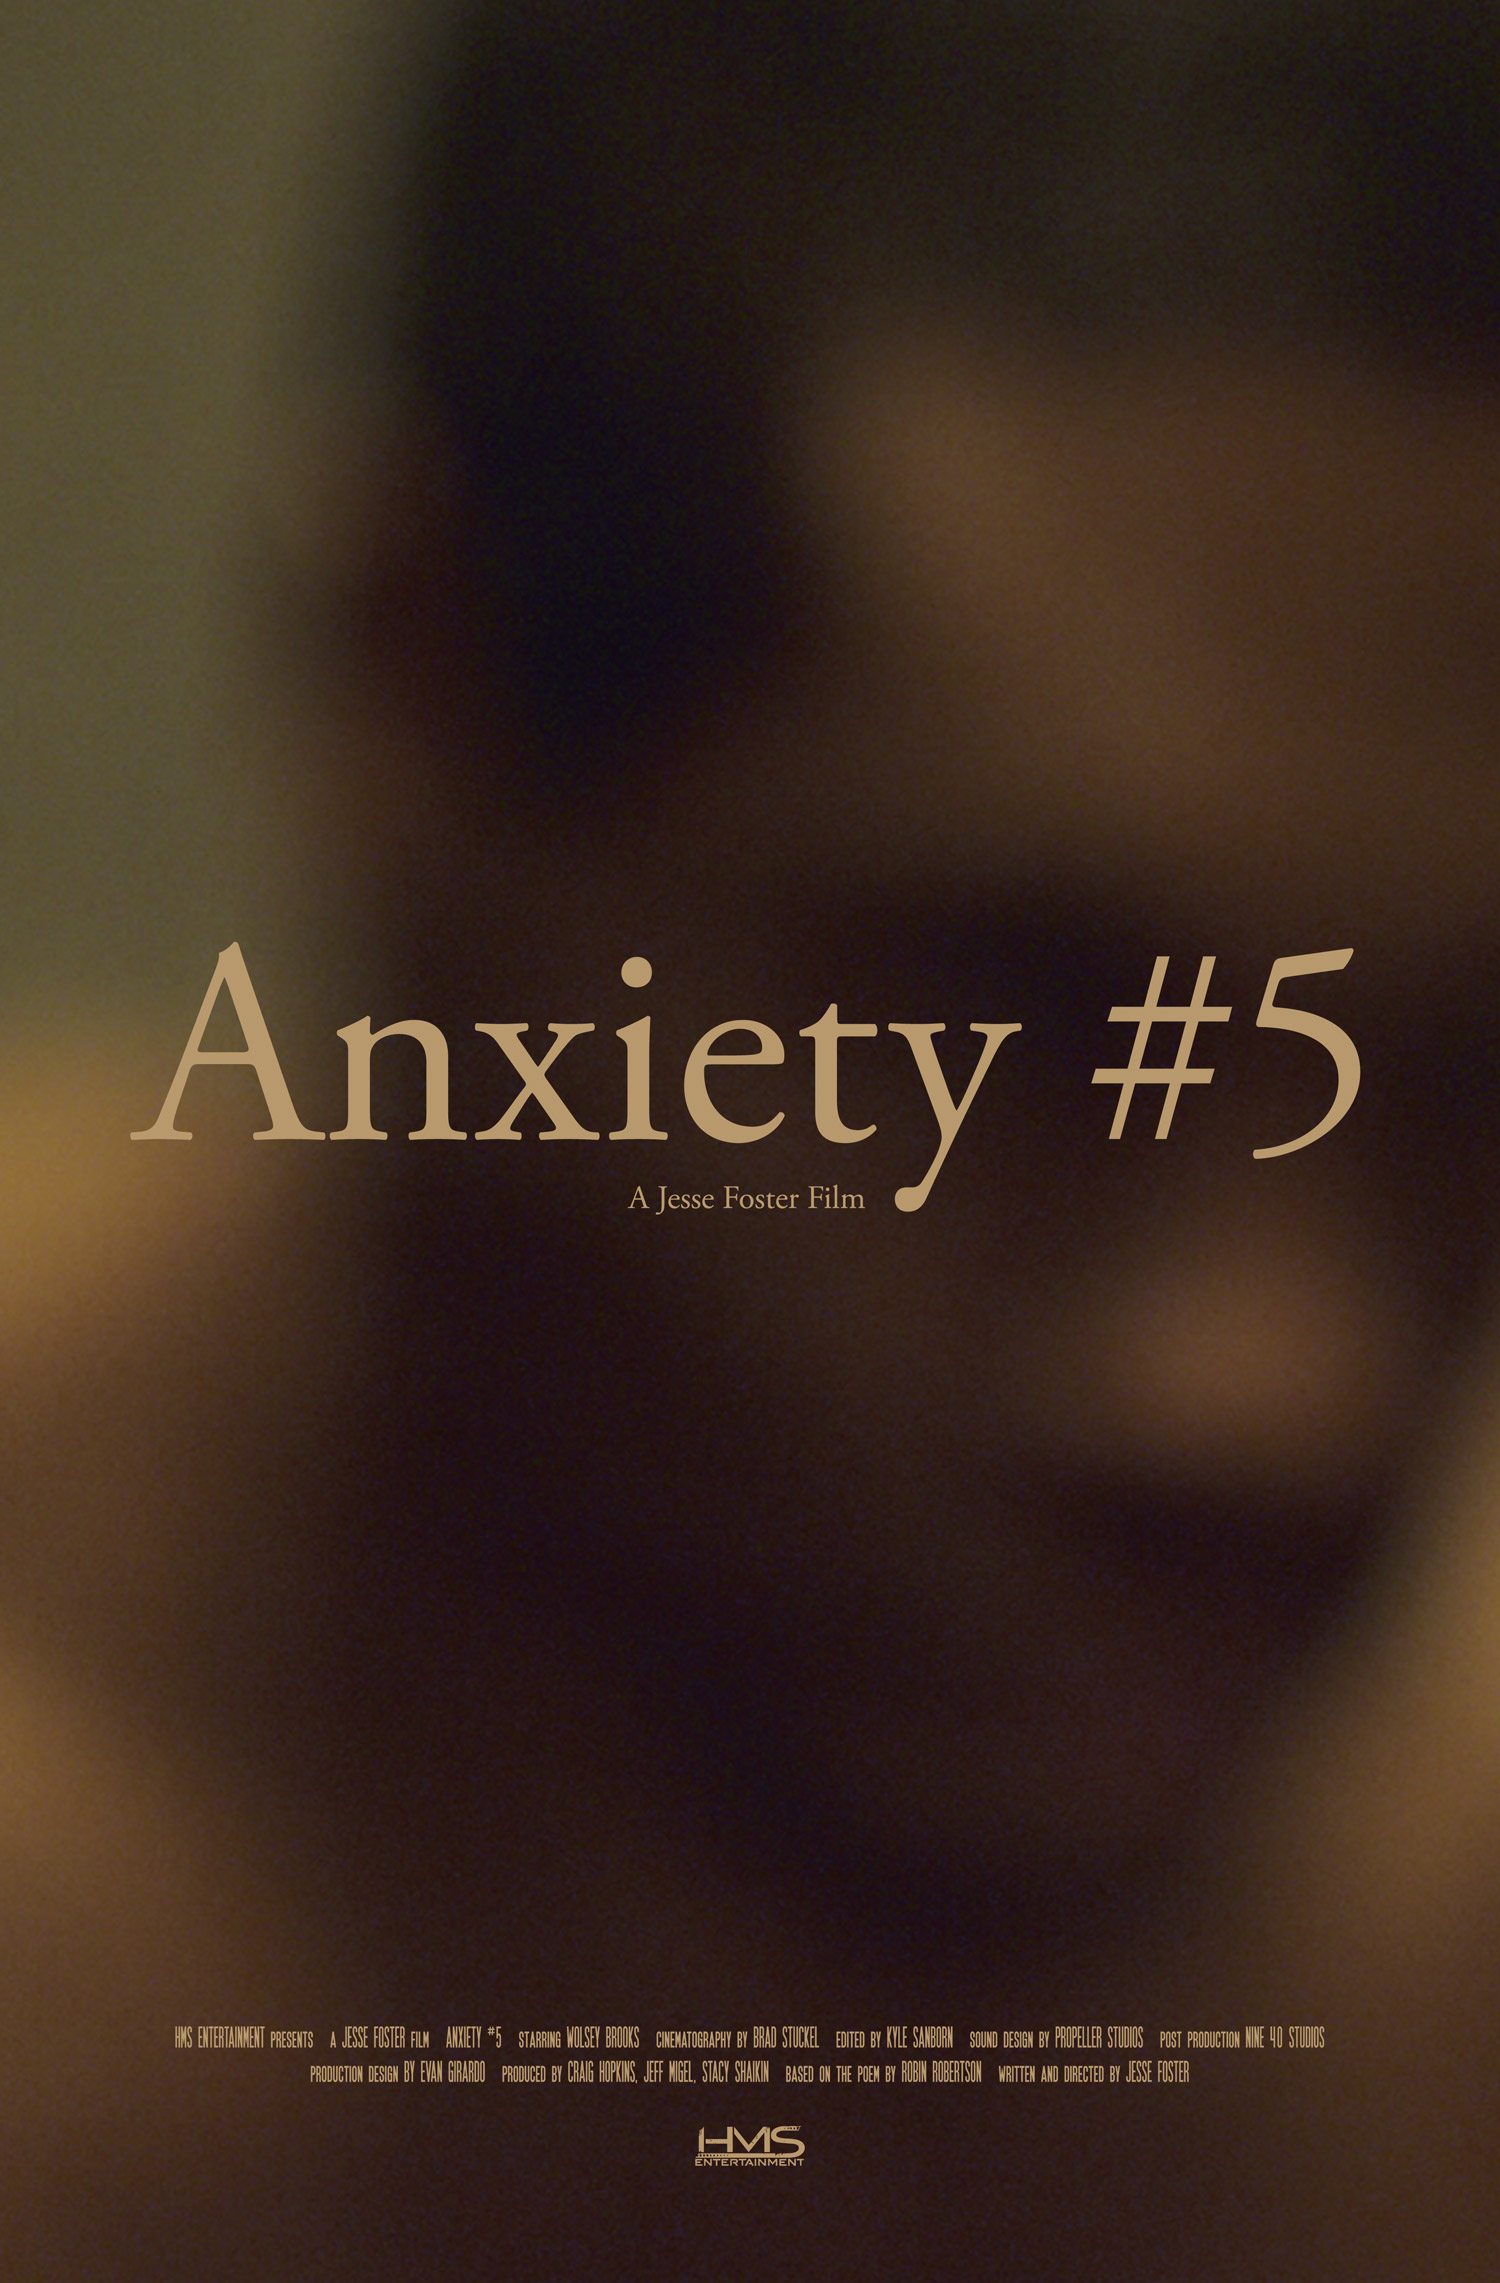 Anxiety #5